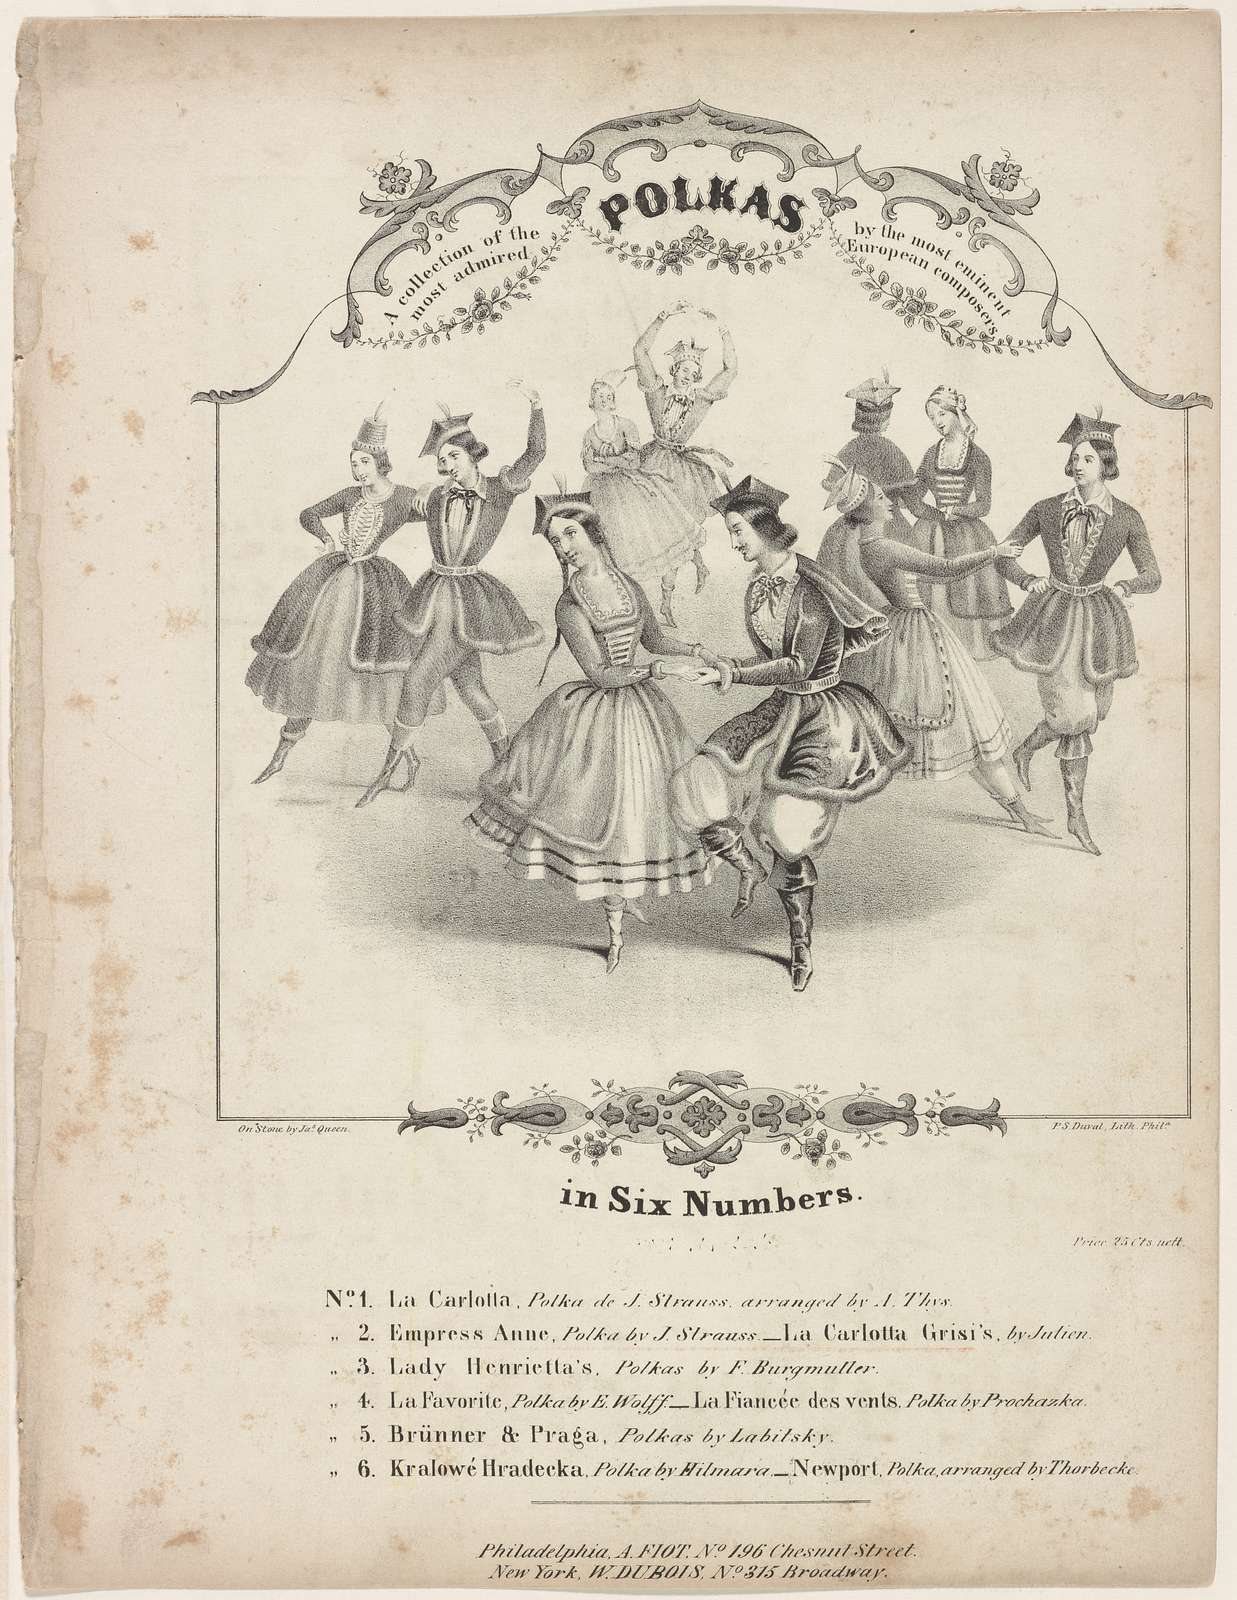 A collection of the most admired polkas by the most eminent European composers in six Numbers. No. 2. Empress Anne, polka by J. Strauss. - La Carlotta Grisi's, by Julien.: [Lithograph] On stone by Jas. Queen. P. S. Duval, Lith. Phila.